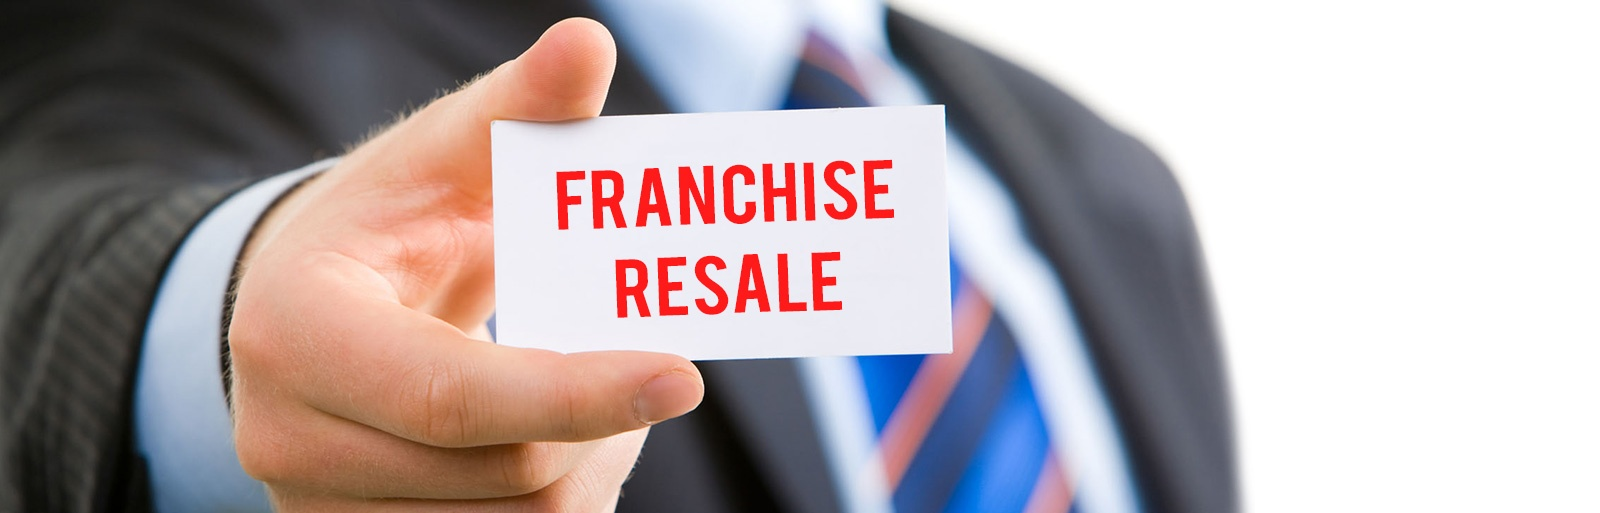 franchise-resale